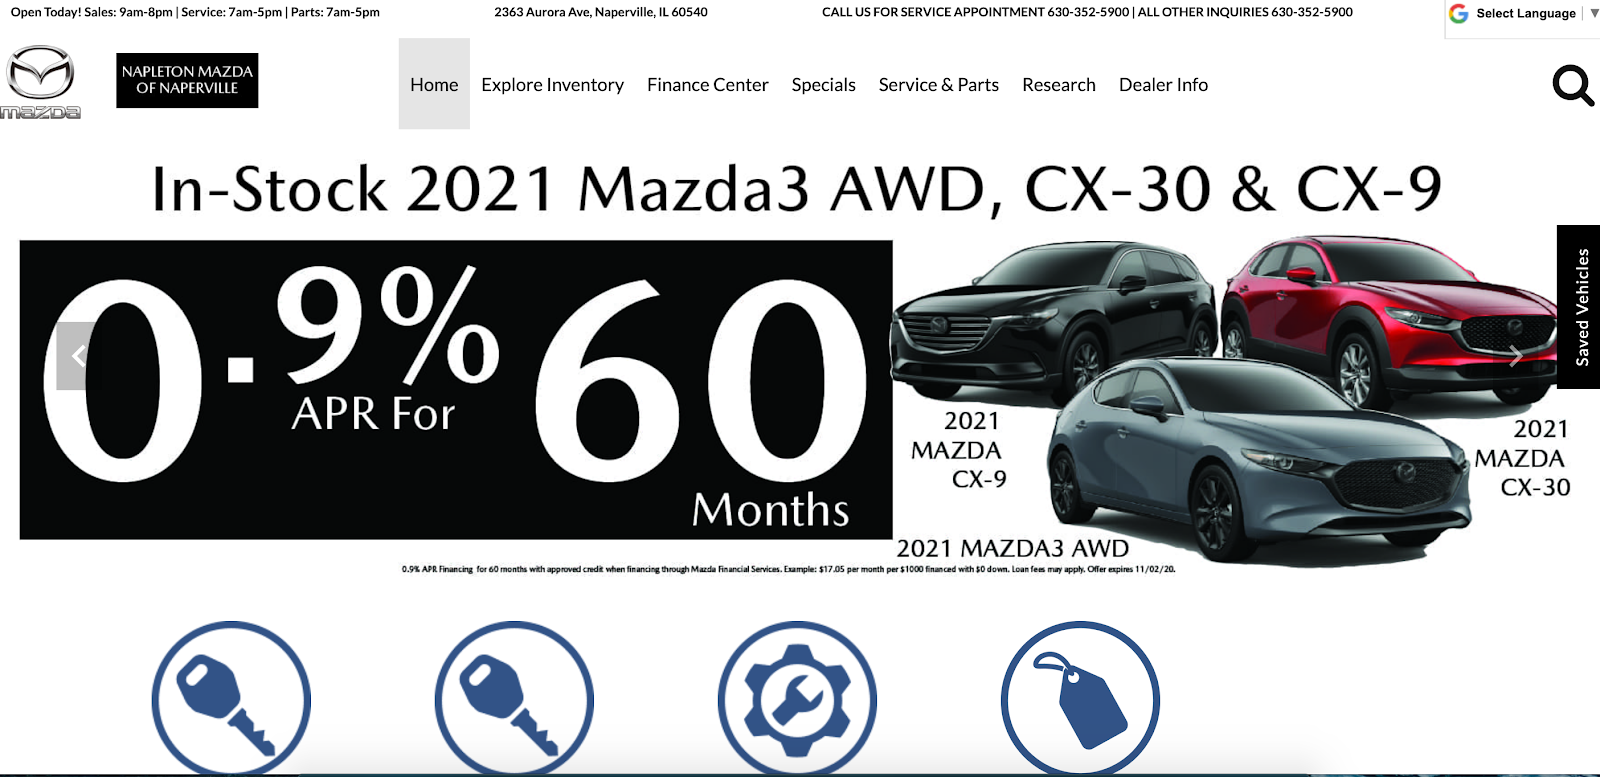 Photo of Continental Mazda of Naperville homepage